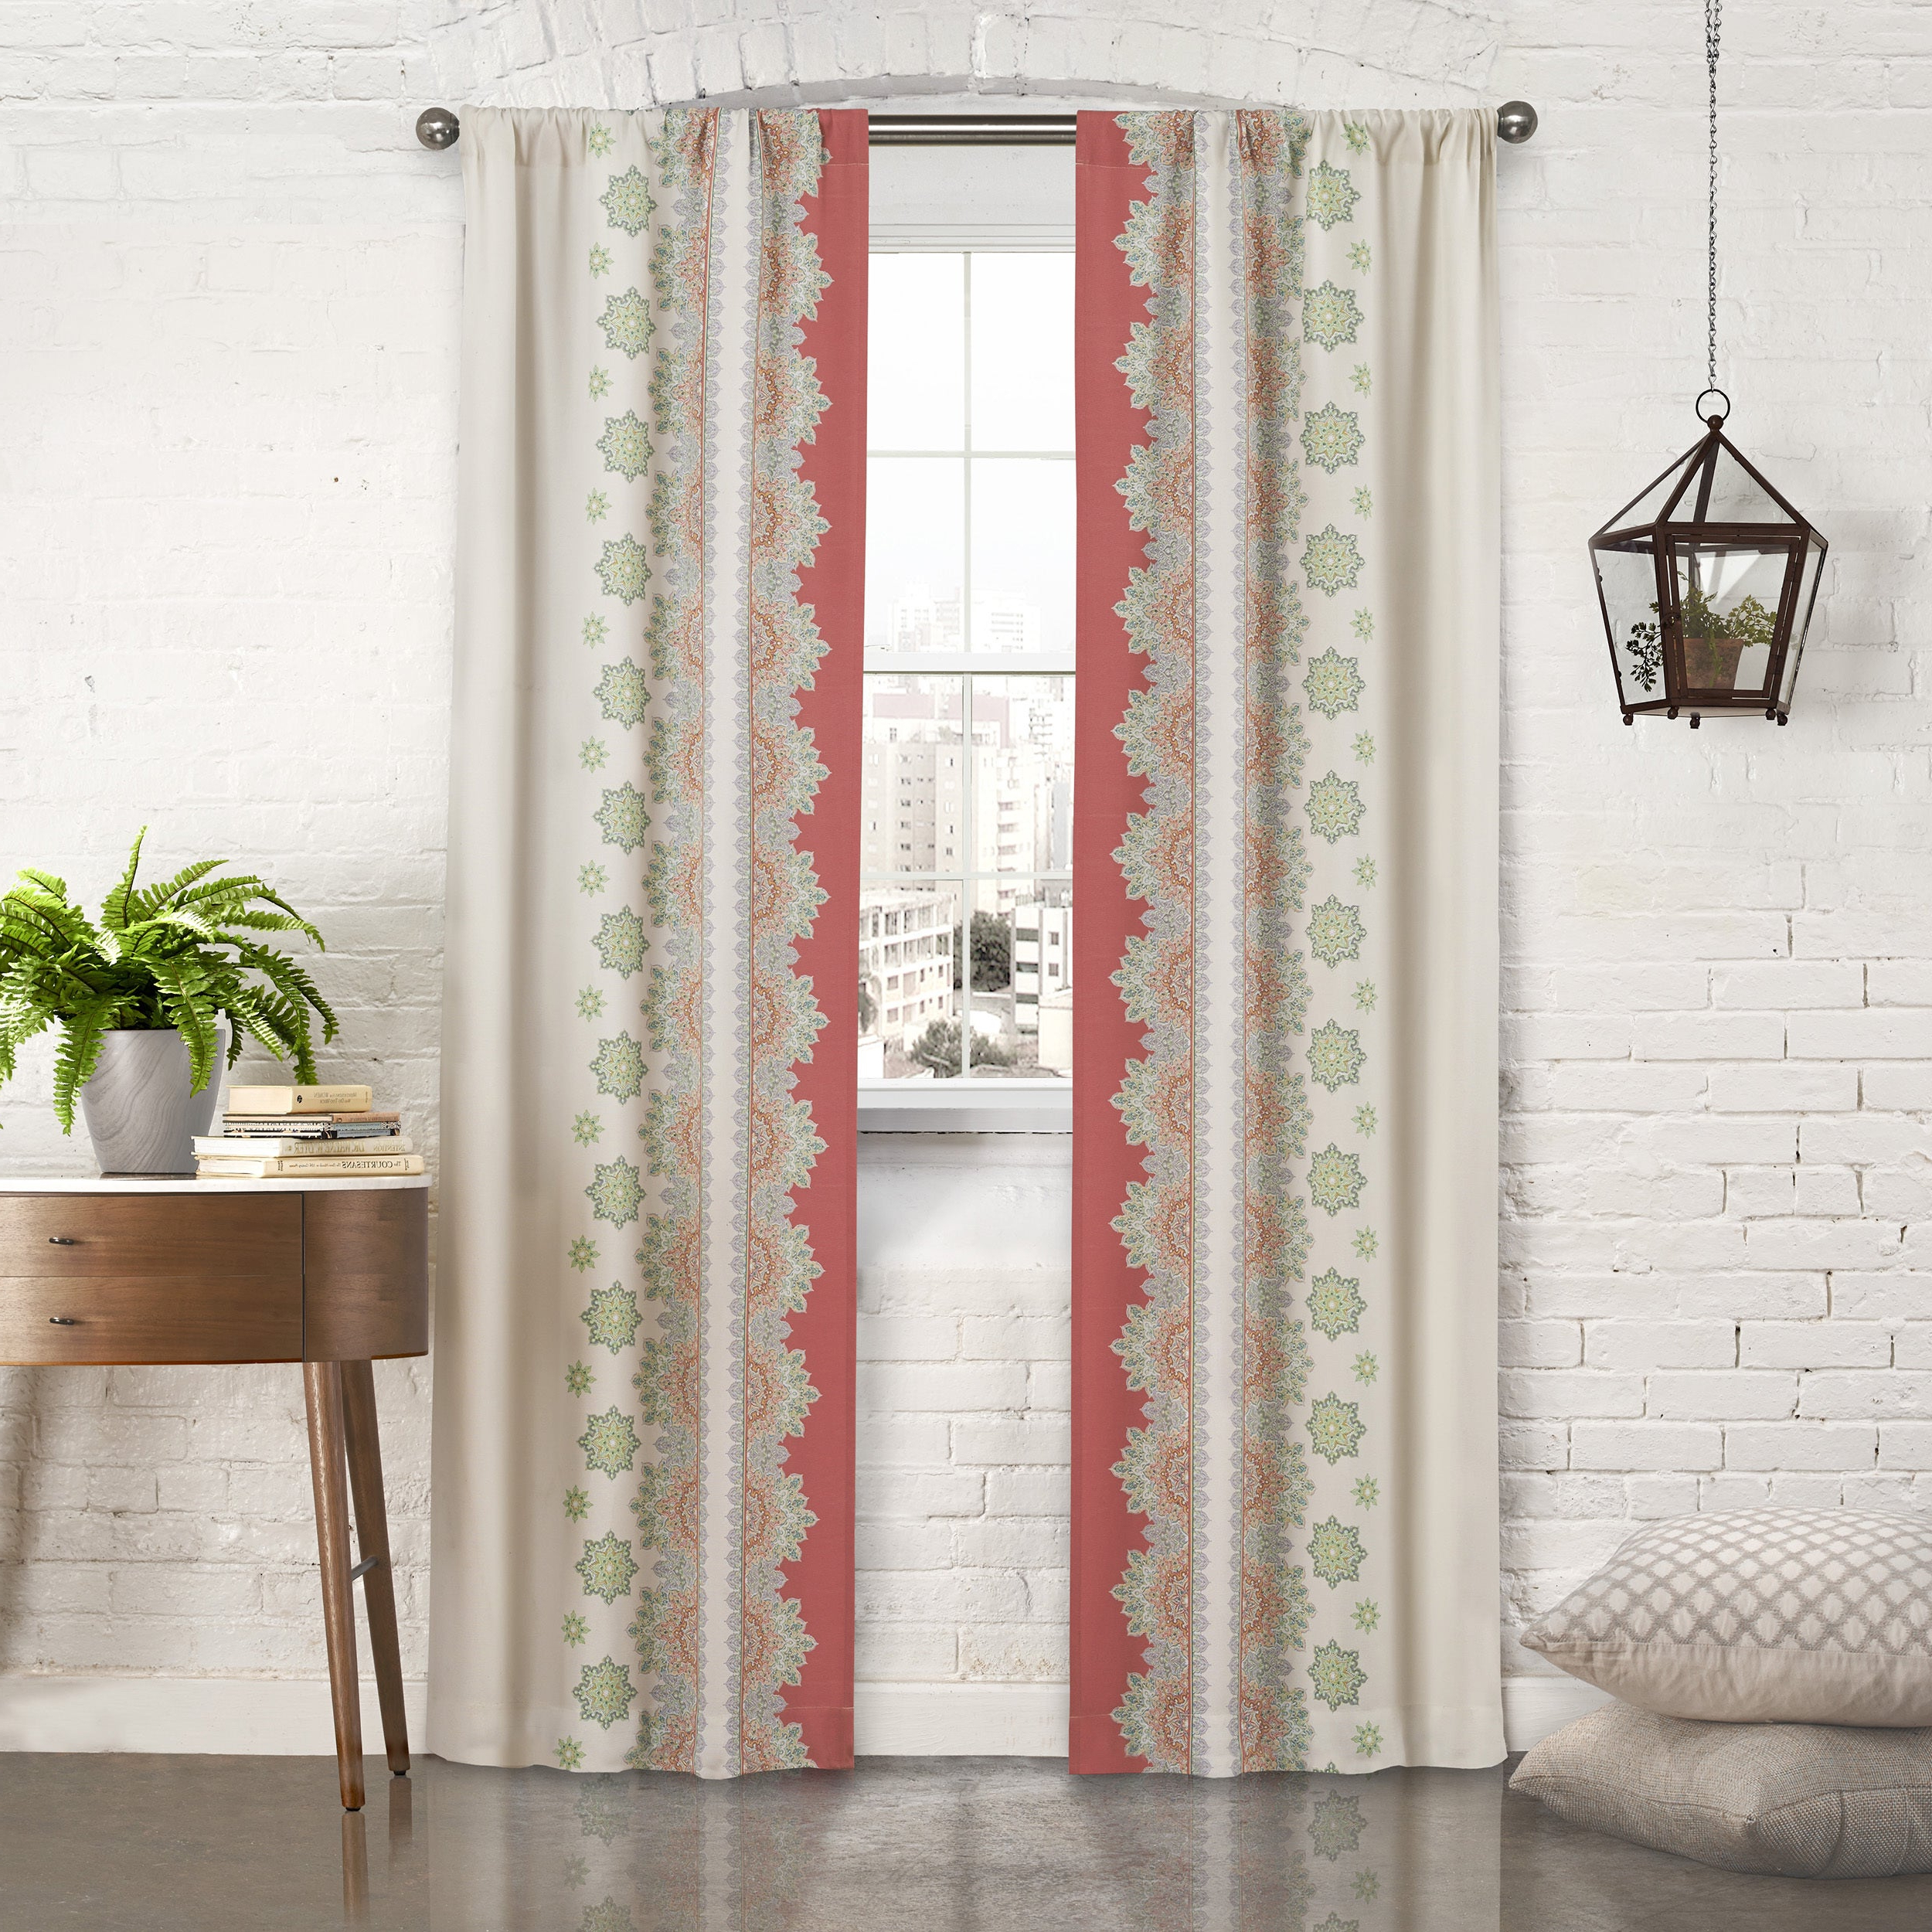 Details About Pairs To Go Mantra Curtain Panel Pair Pertaining To Most Current Pairs To Go Victoria Voile Curtain Panel Pairs (View 12 of 20)